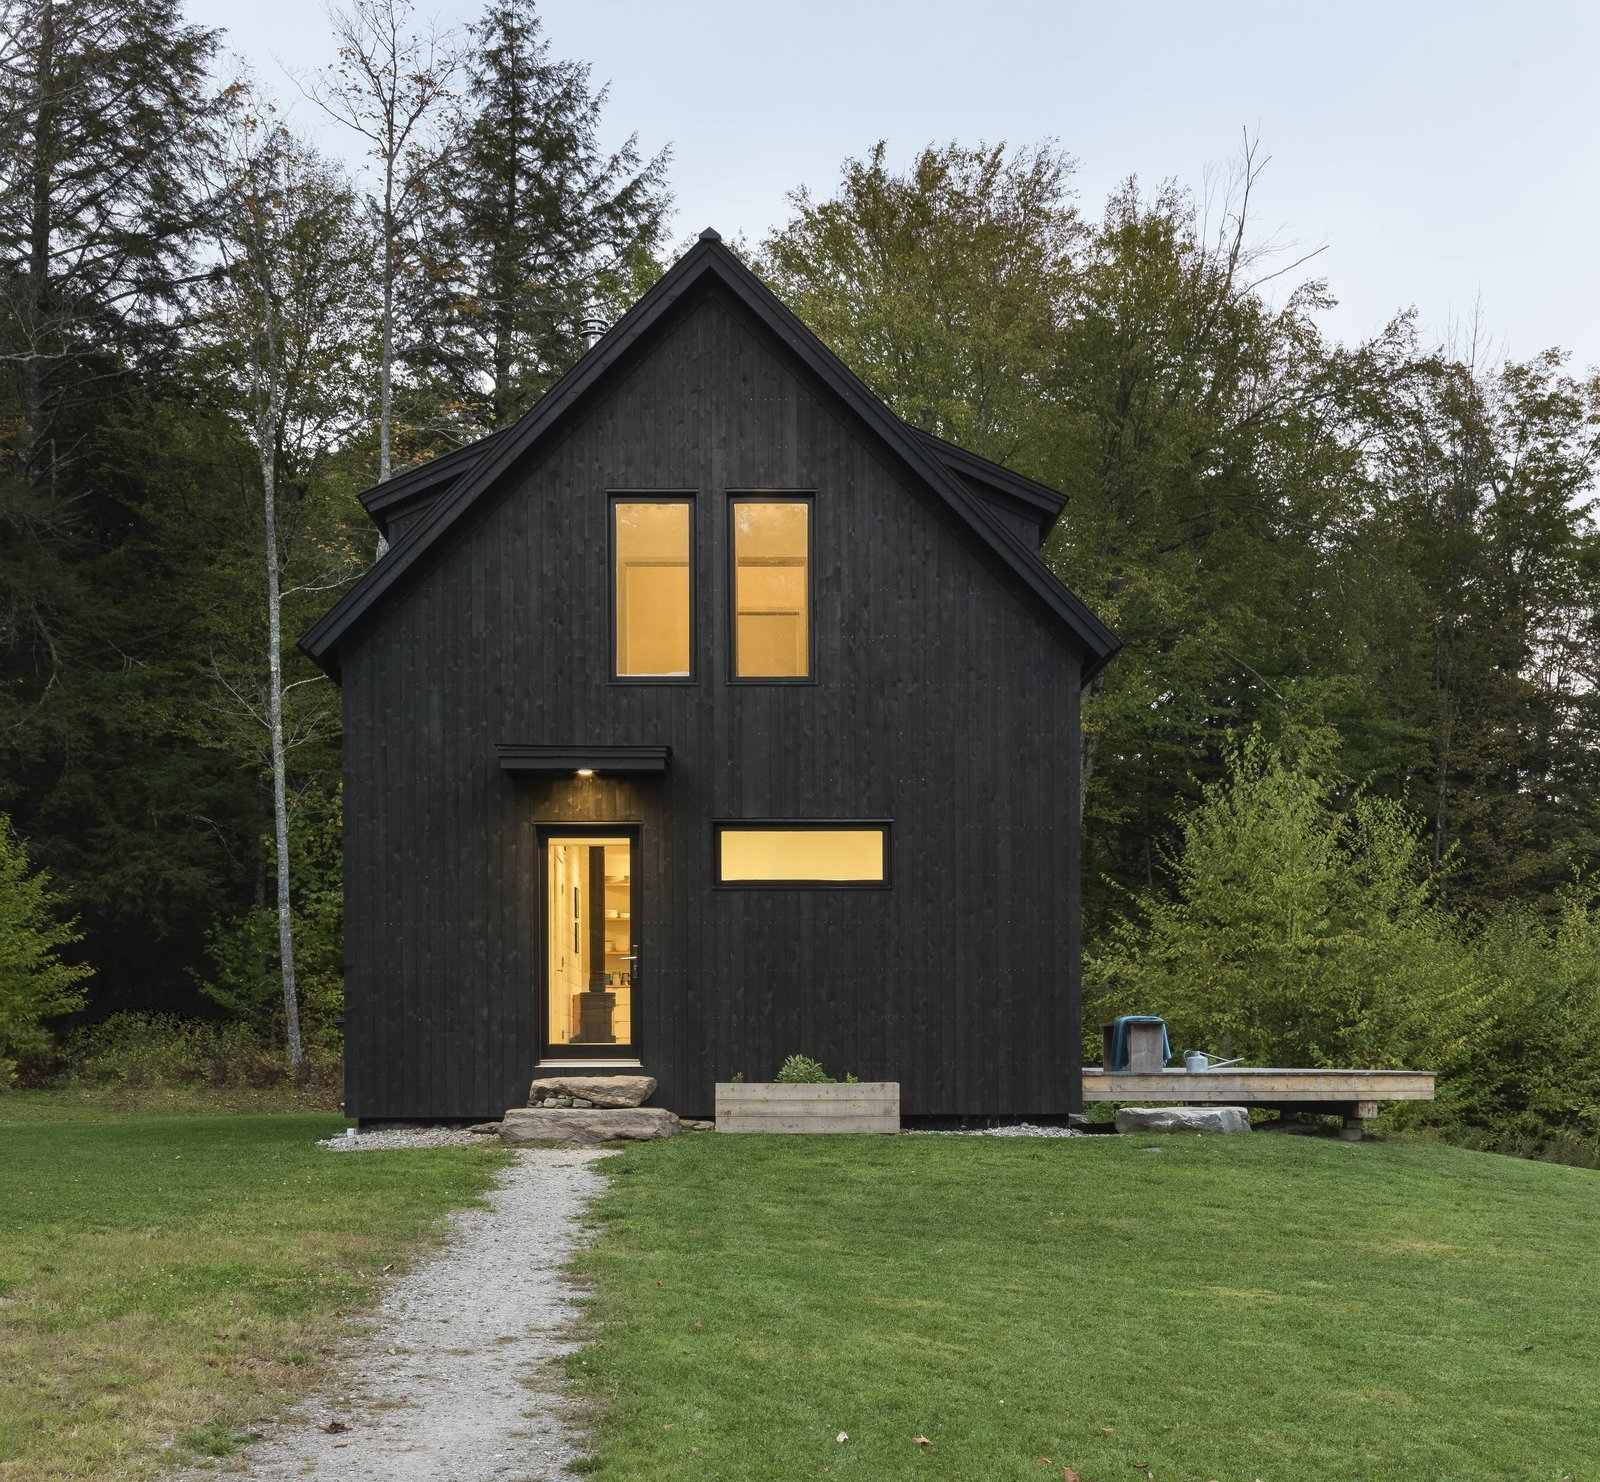 Outdoor, Raised Planters, Trees, Field, Large, Front Yard, Side Yard, Wood, Slope, Woodland, Shrubs, and Grass Close to Sugarbush's Mount Ellen and the Mad River Glen ski area, Fayston, Vermont, is the prime setting for Little Black House. Giving the retreat its name, Elizabeth Herrmann Architecture + Design only had 1,120 square feet to work with. Sitting just below the top of a hill, the black-stained cabin flaunts a classic gable structure with a stripped-down interior melding white walls and pale wood floors.  Outdoor Side Yard Raised Planters Photos from A Little Black Cabin Keeps Things Simple for a Family of Four in Vermont